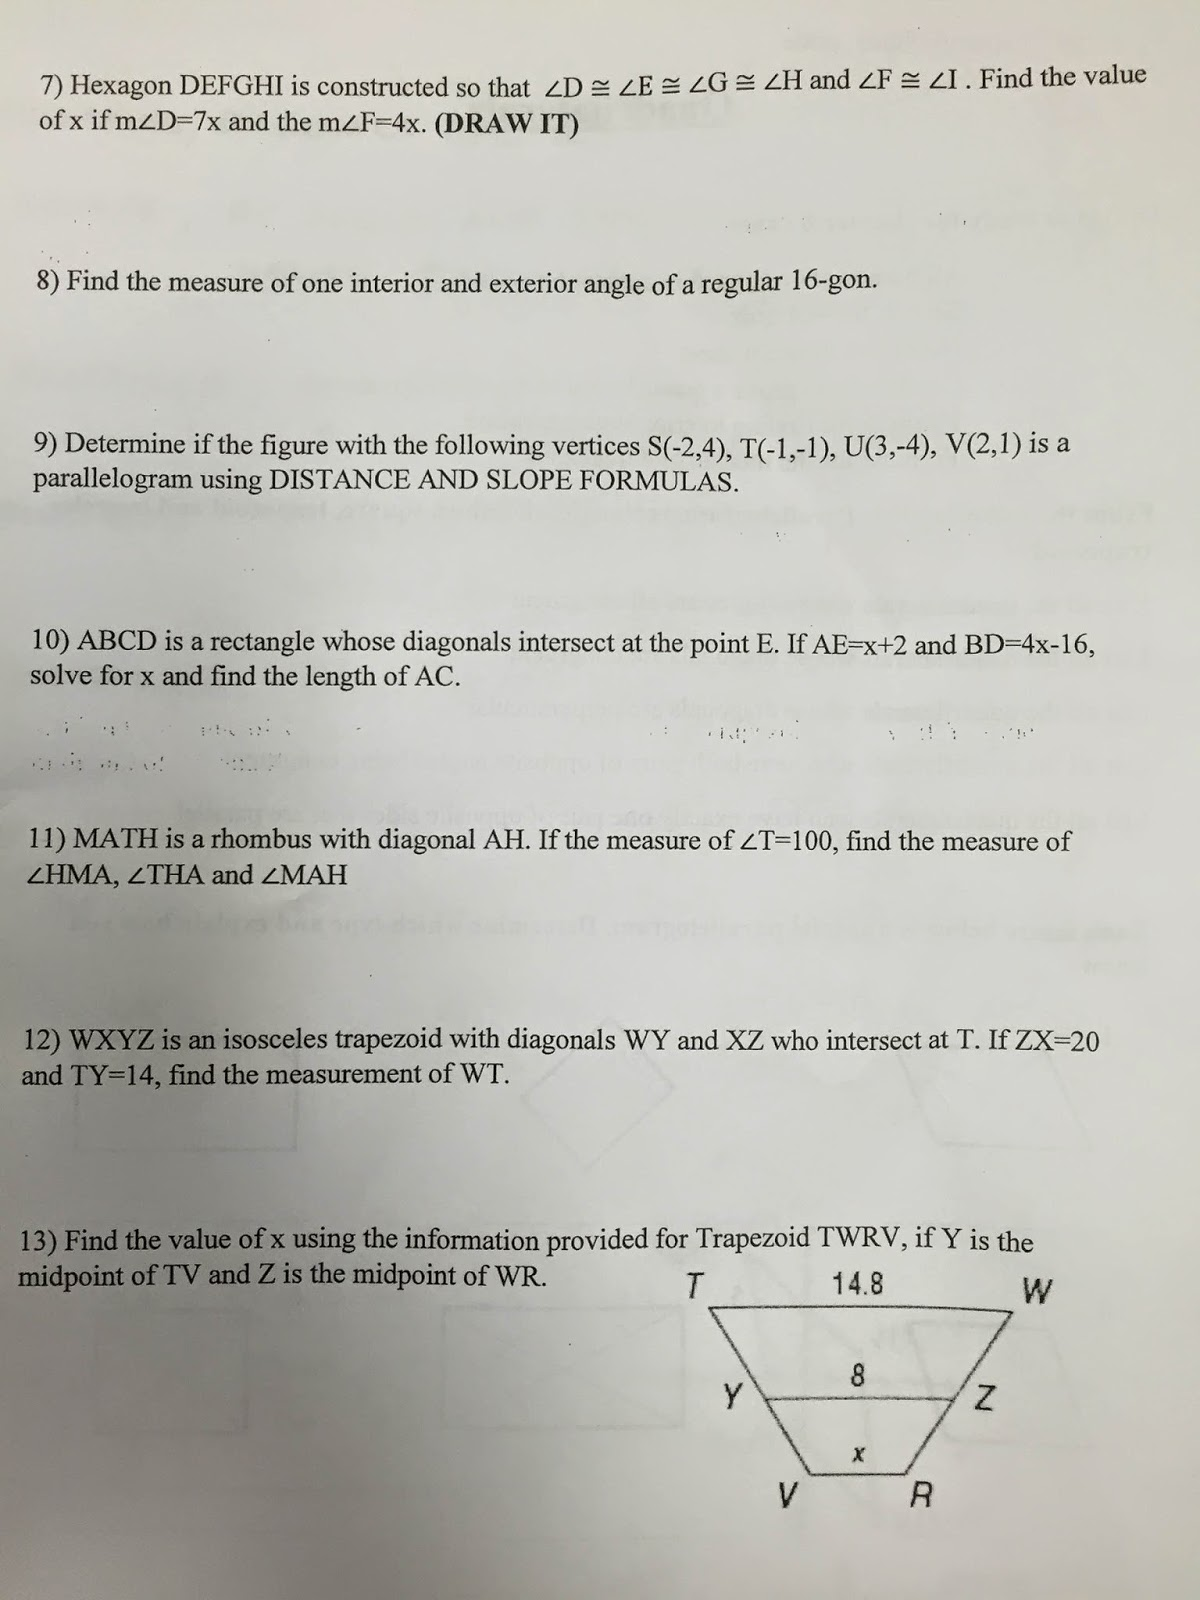 honors geometry vintage high school chapter 6 quadrilaterals rh hgeometryvhs blogspot com glencoe geometry chapter 6 study guide glencoe geometry chapter 6 study guide and intervention answers